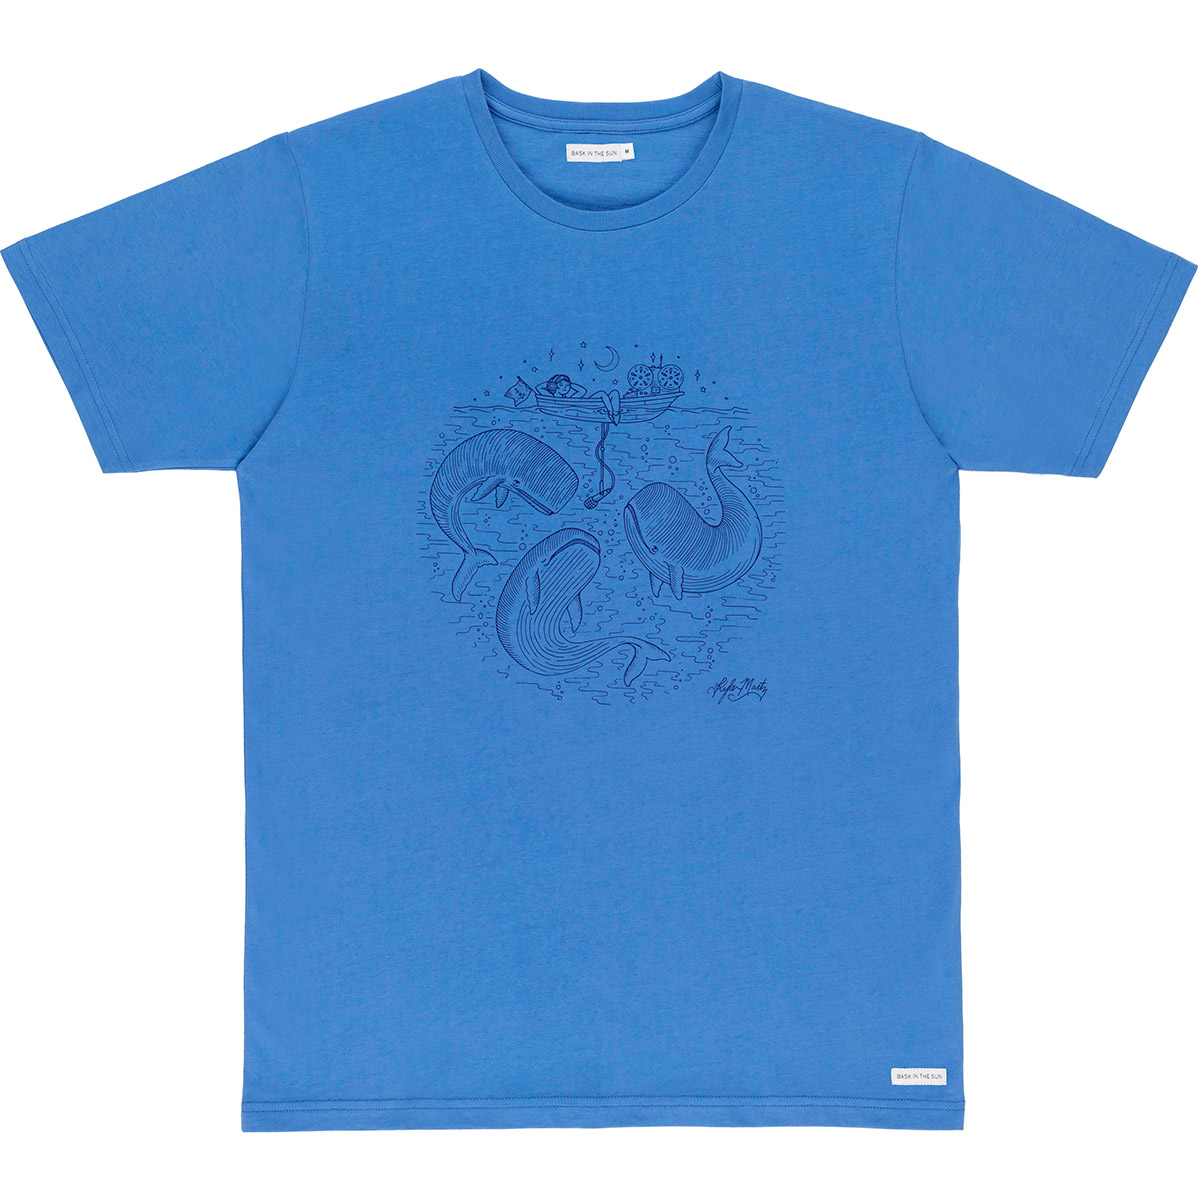 T-shirt en coton bio blue radio cetace - Bask in the Sun num 0